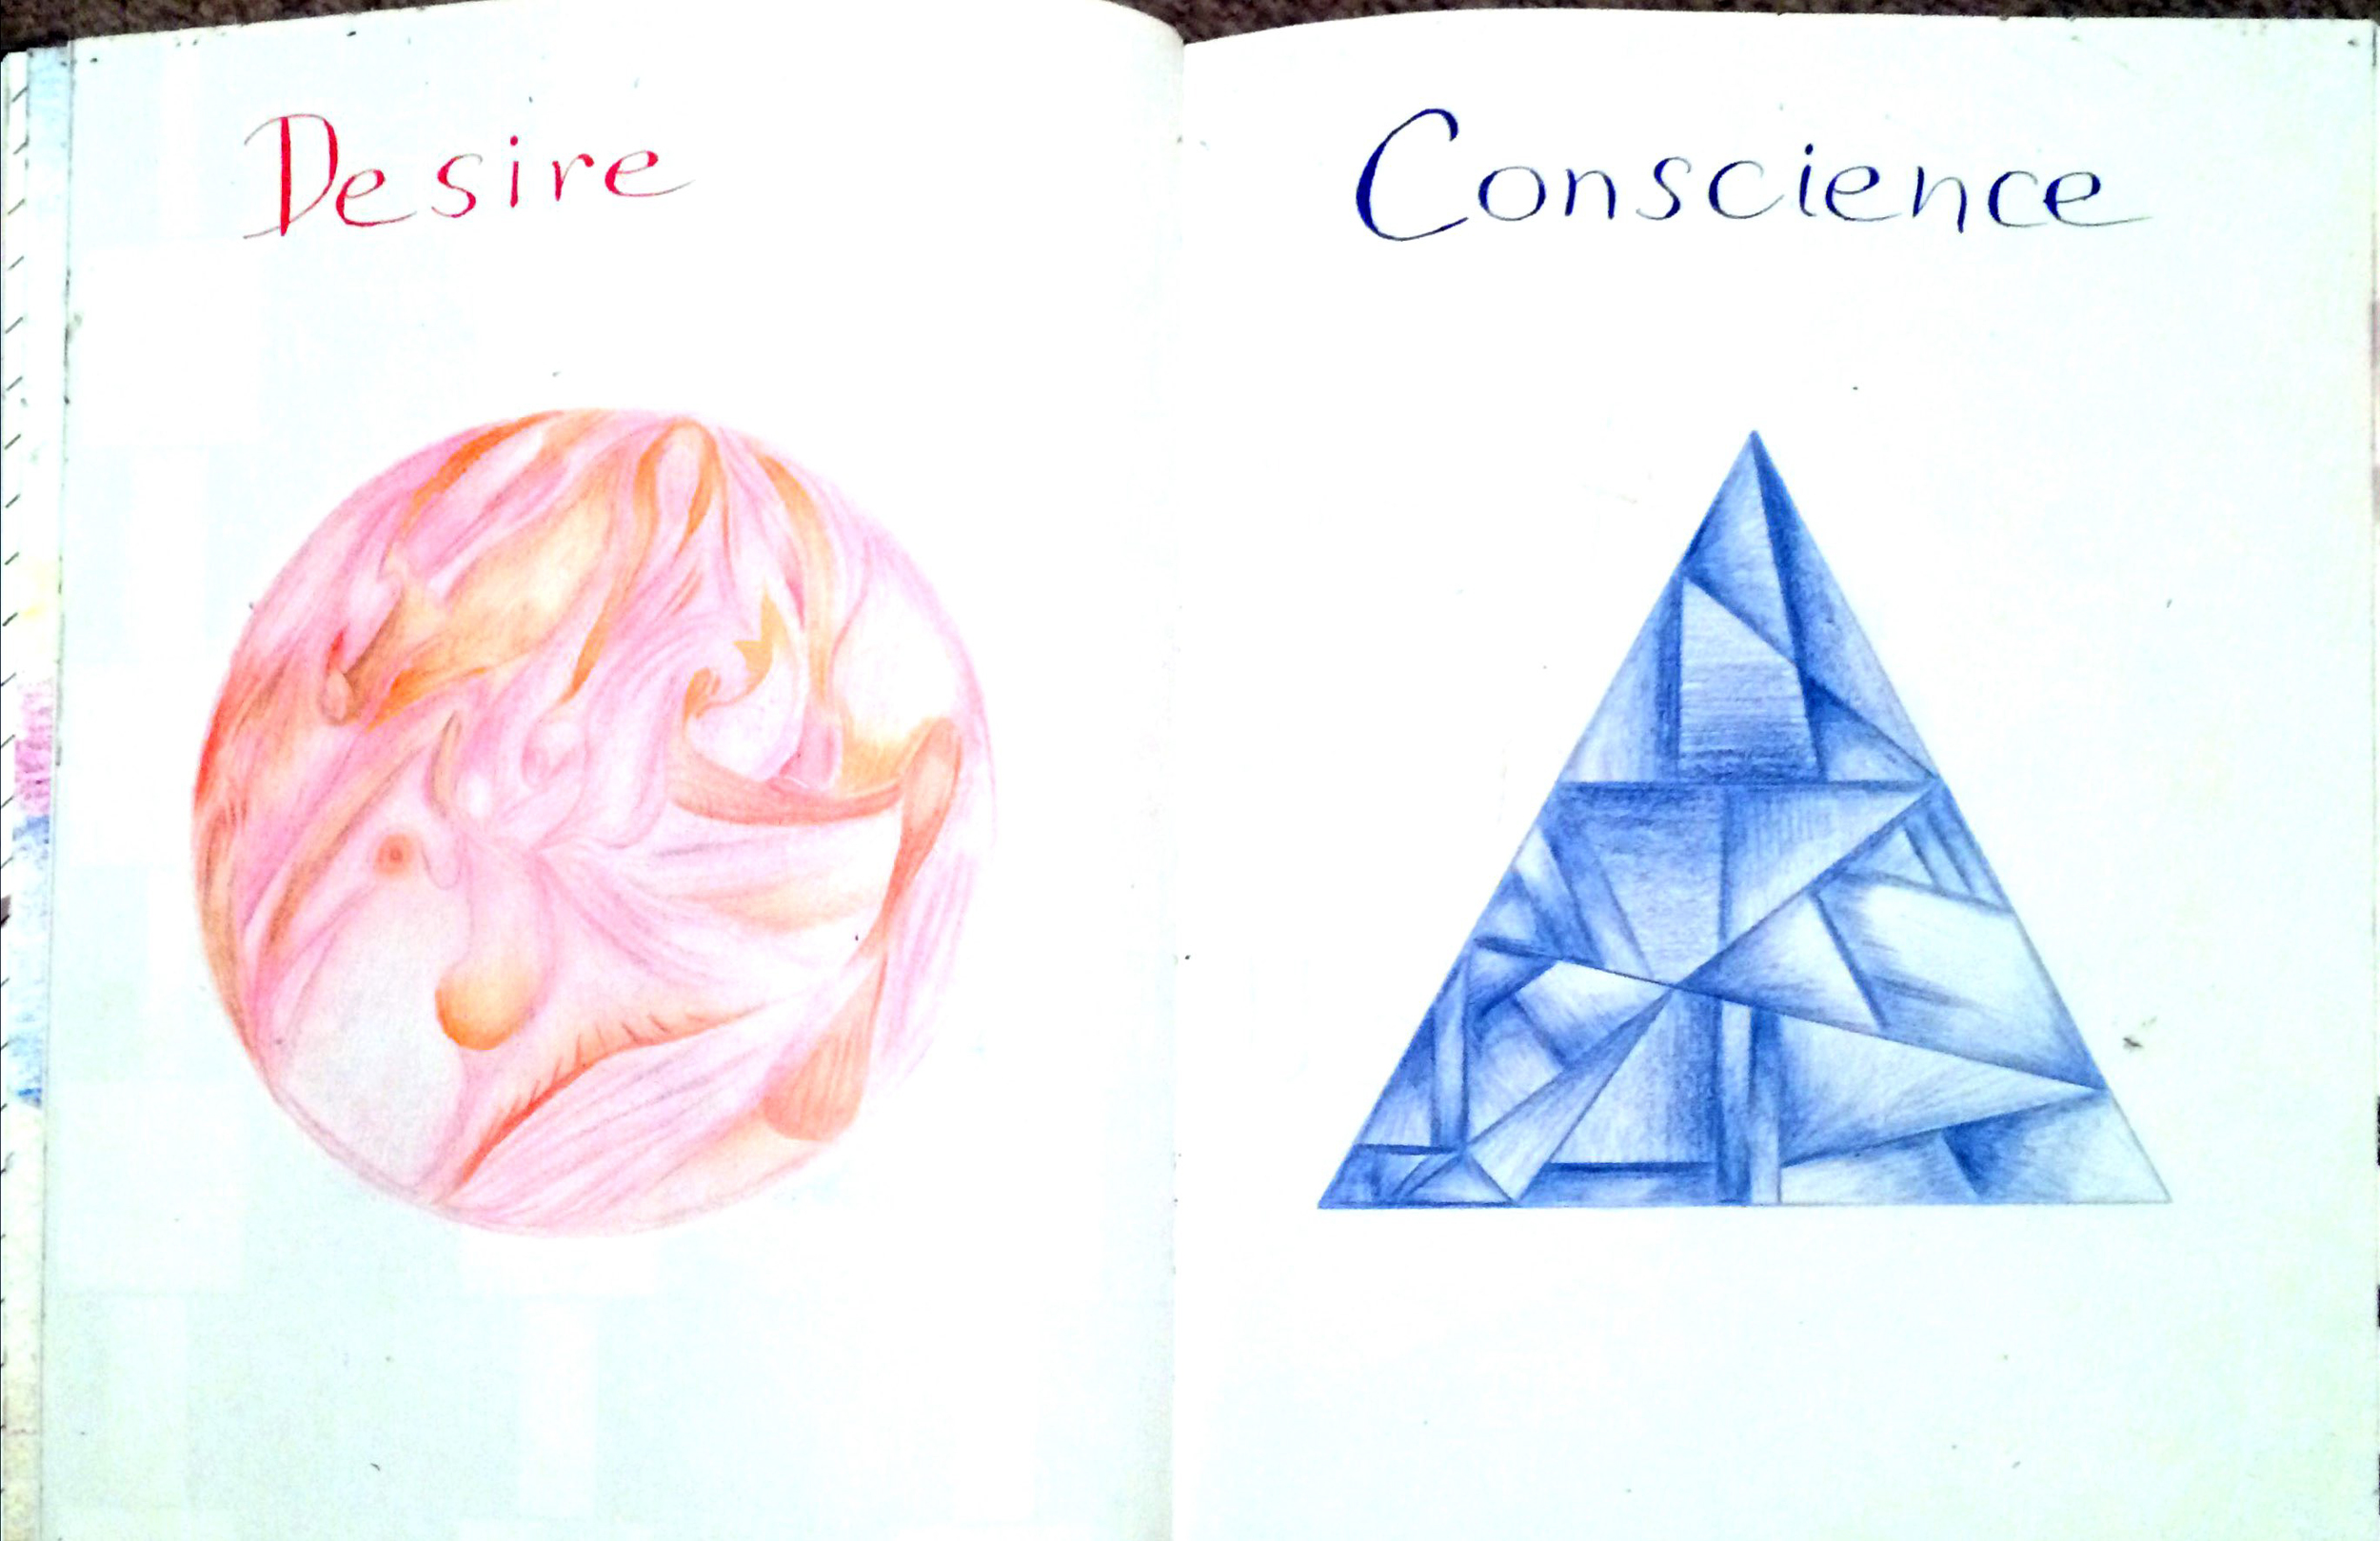 Desire and Conscience